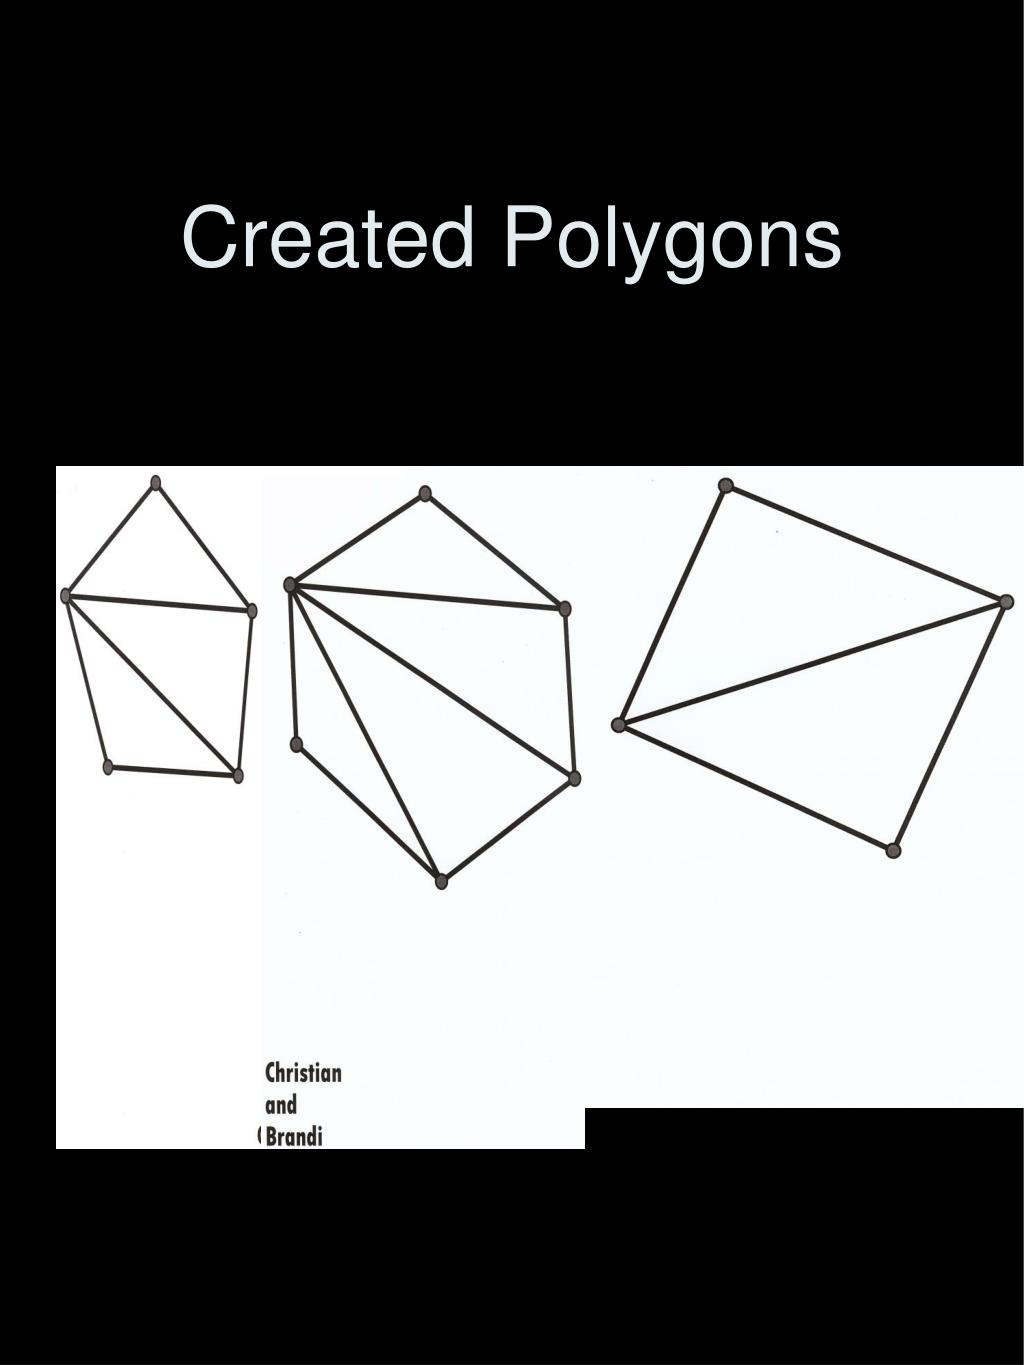 Created Polygons